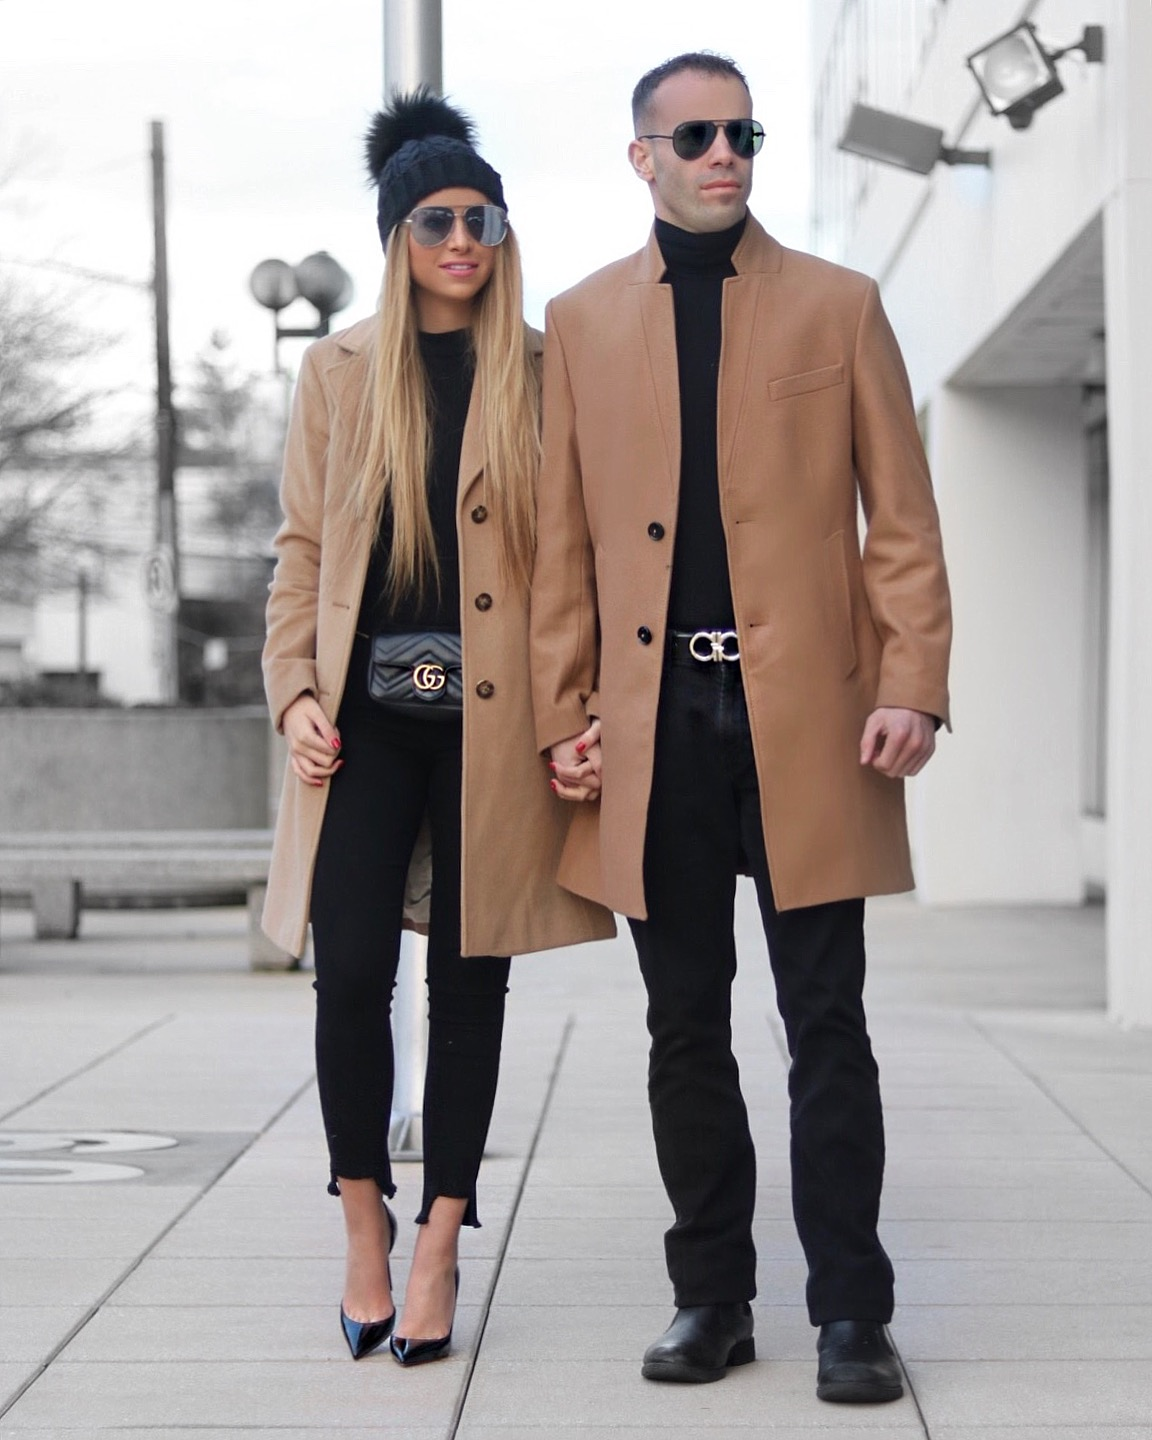 Couple fashion his hers